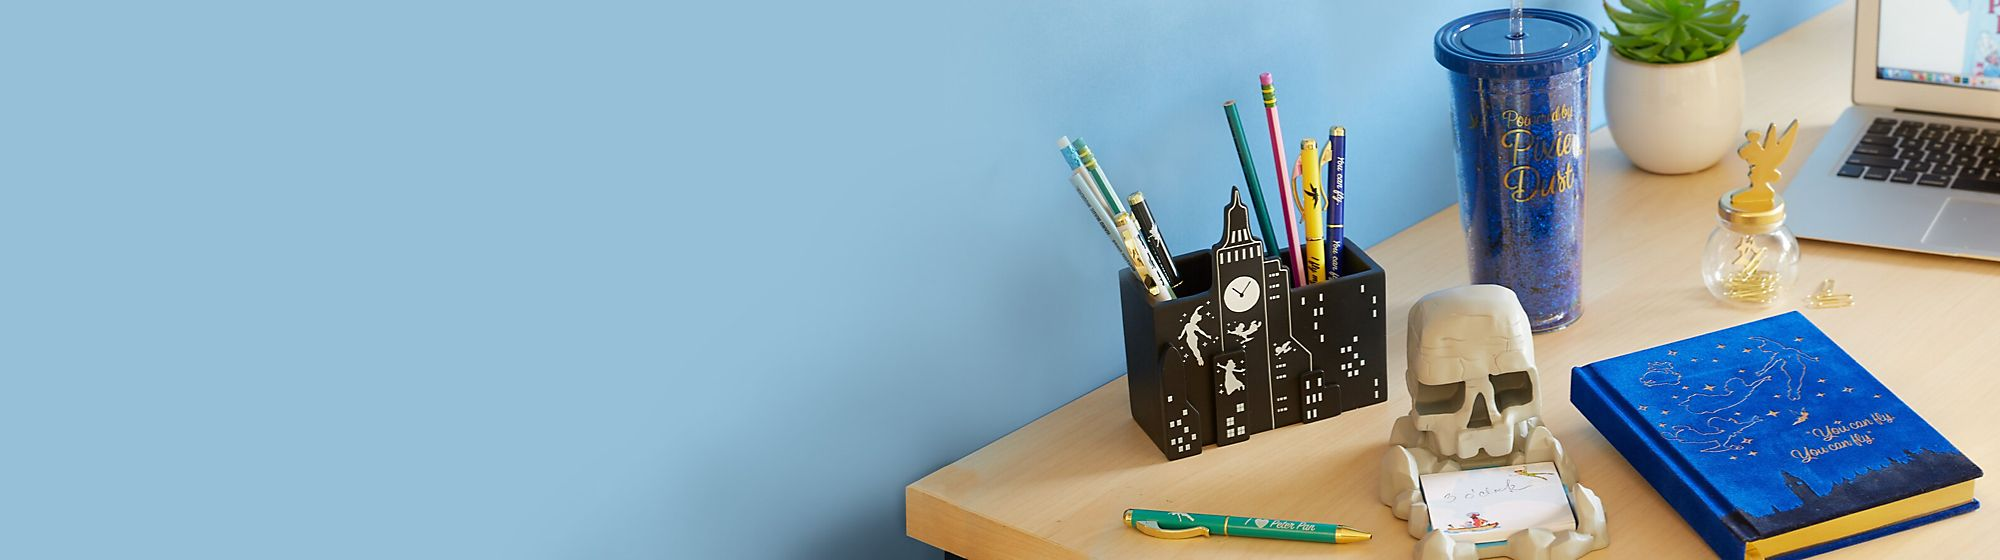 College Must-Haves Decorate your space with fun, character-cool accessories.